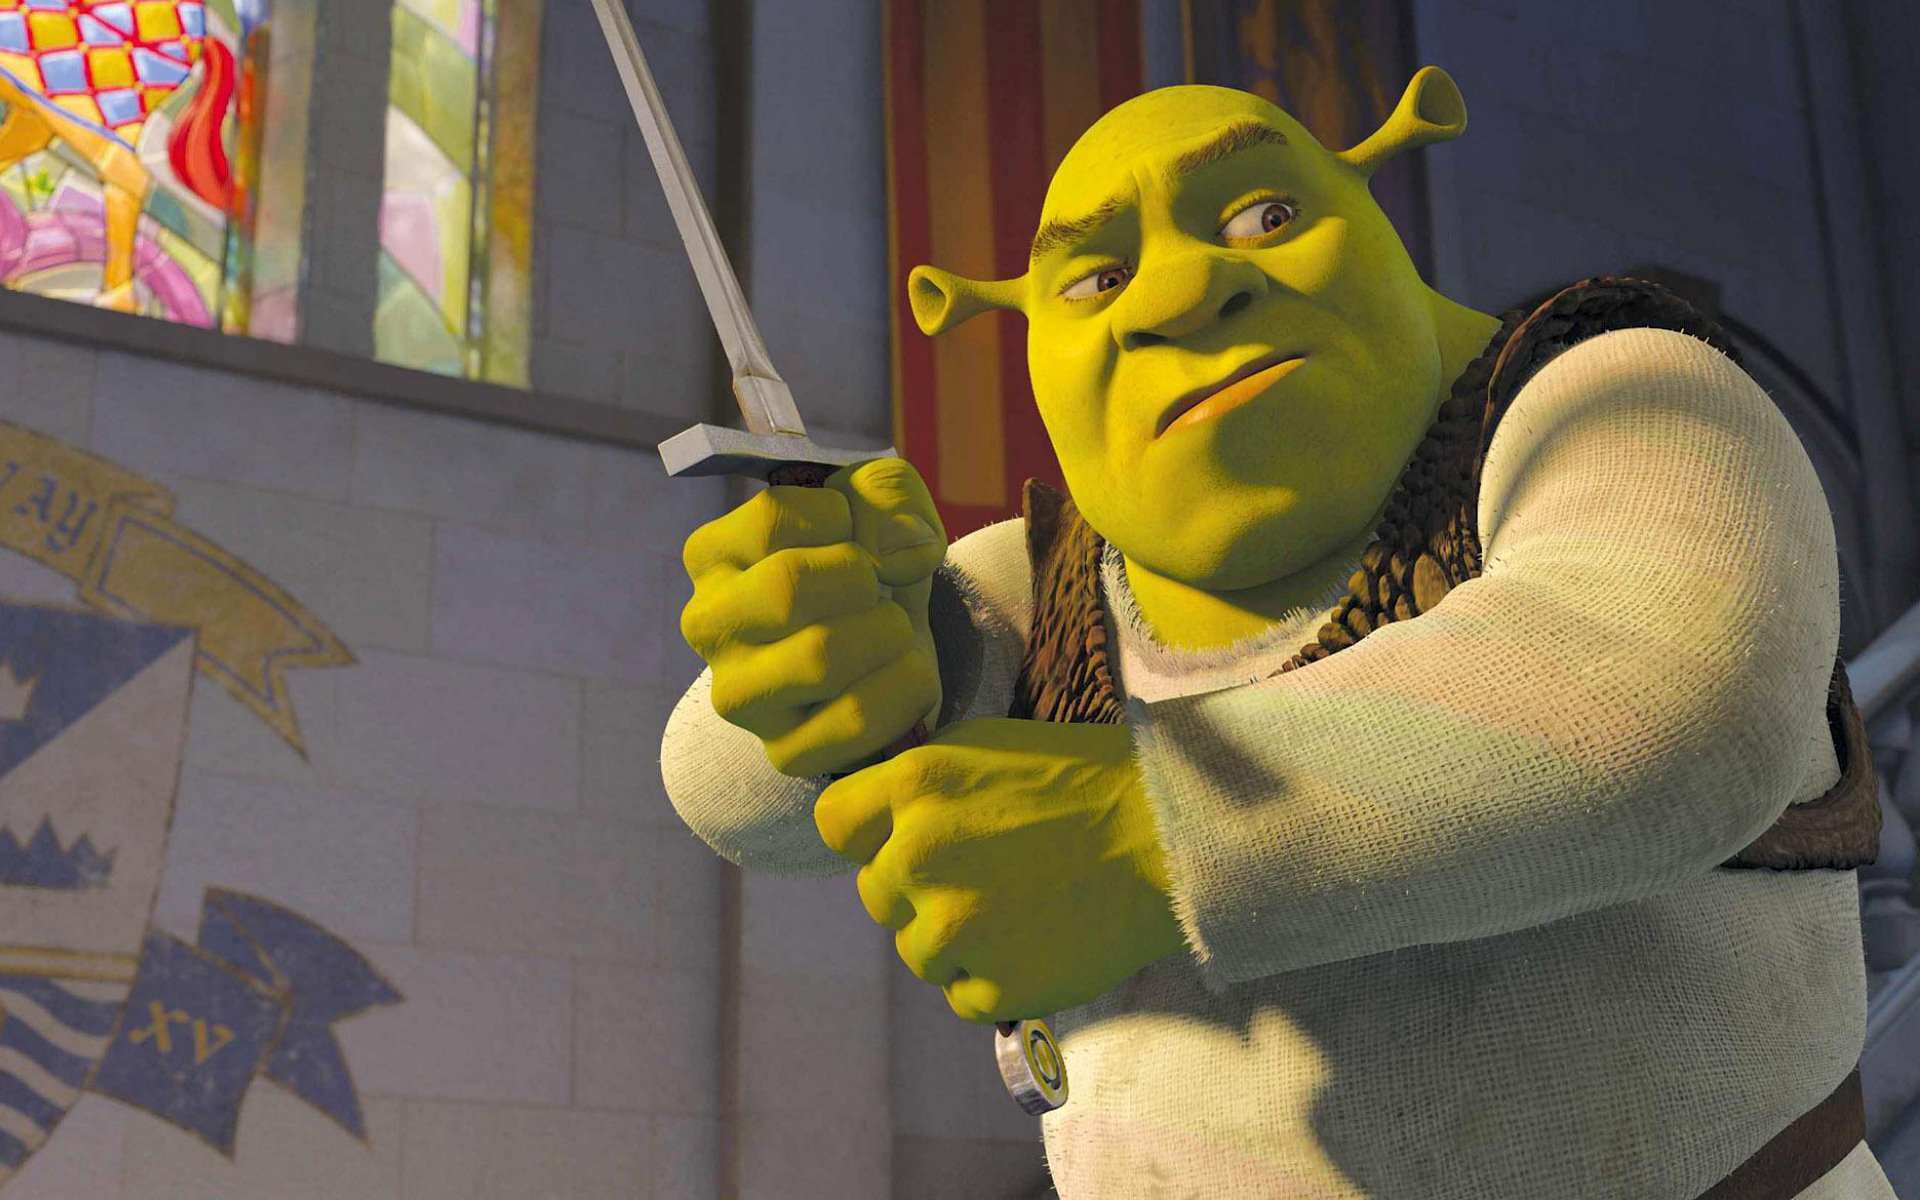 Shrek 5 Release Date, Trailer and Production Updates